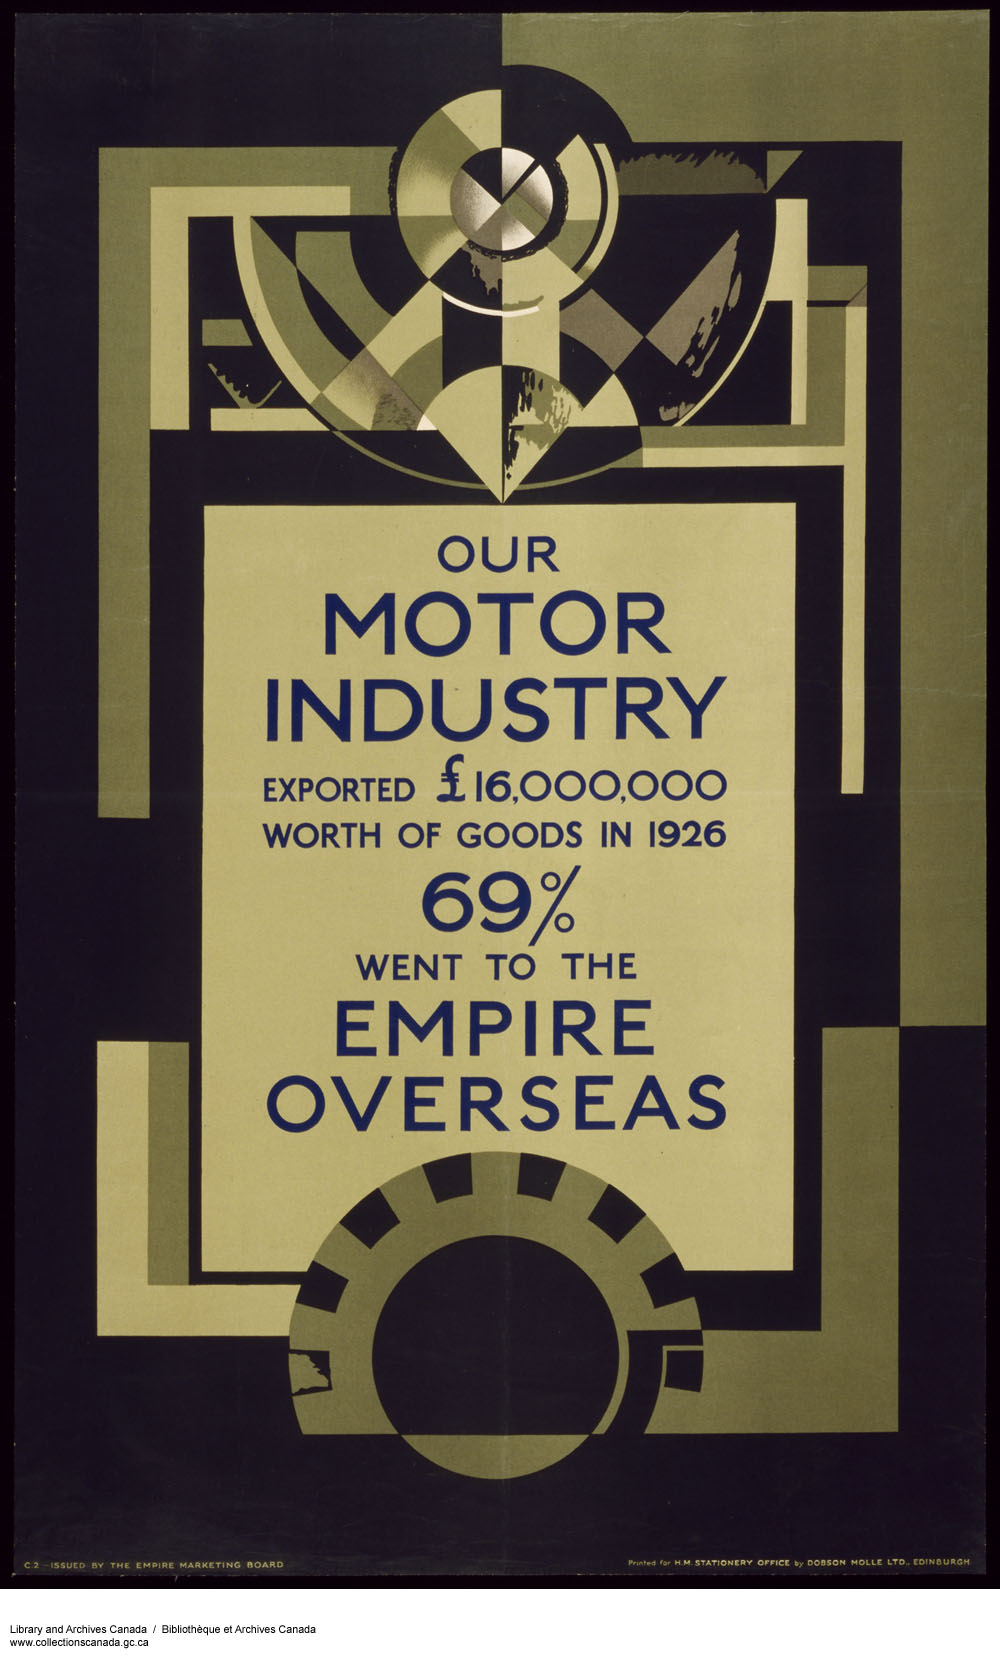 Our Motor Industry :  Empire Overseas Motor Industry. (item 1)